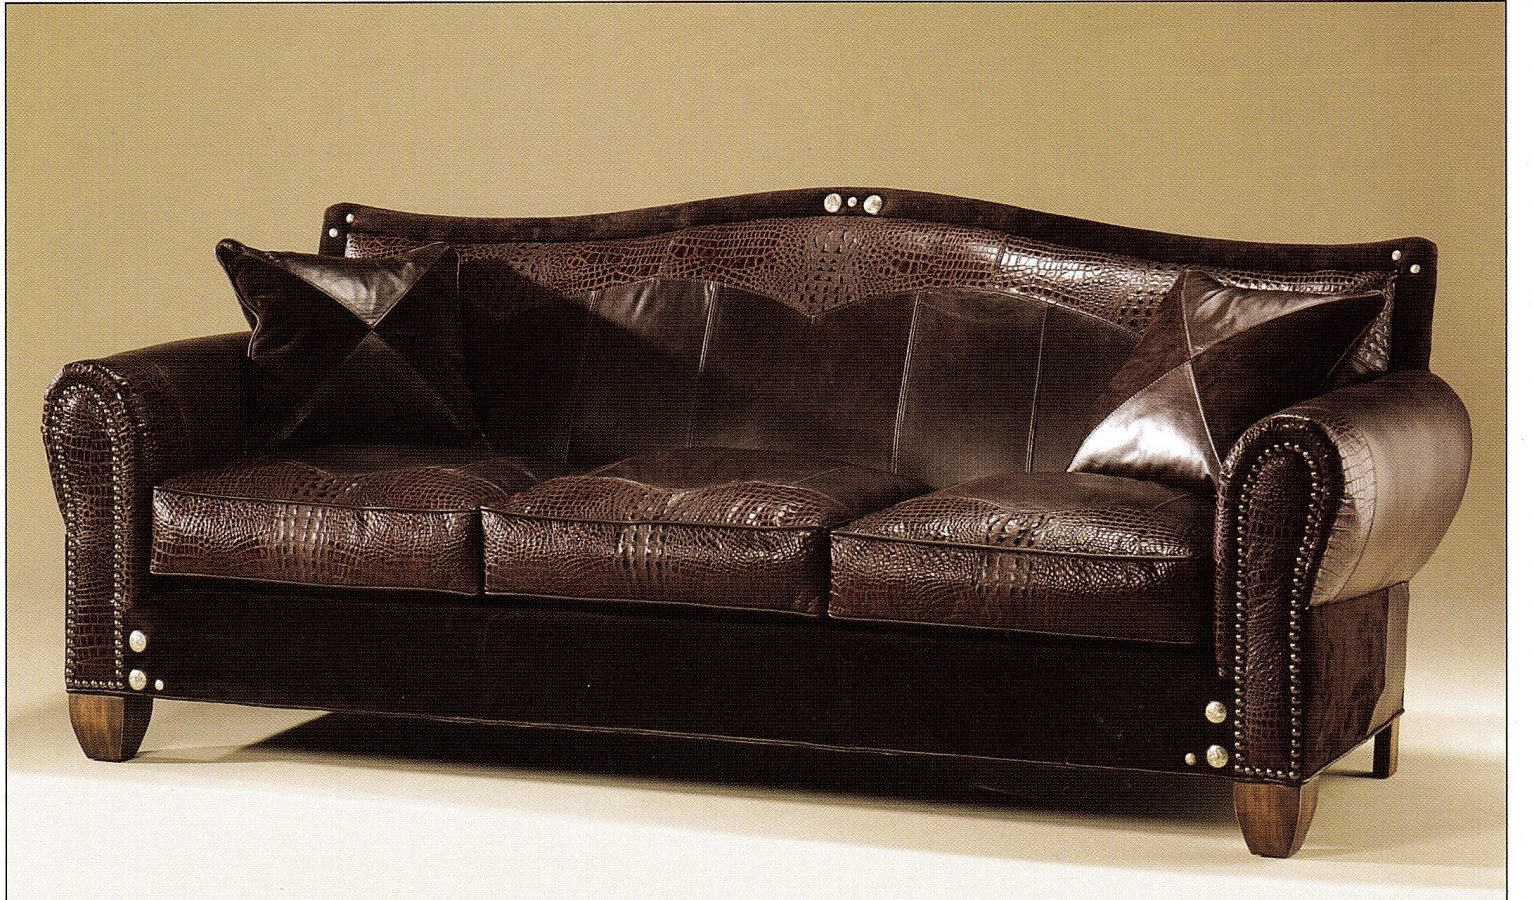 Maitland-Smith Sofa With 3 Seats in Chocolate Brown Faux Crocodile Leather  & Suede